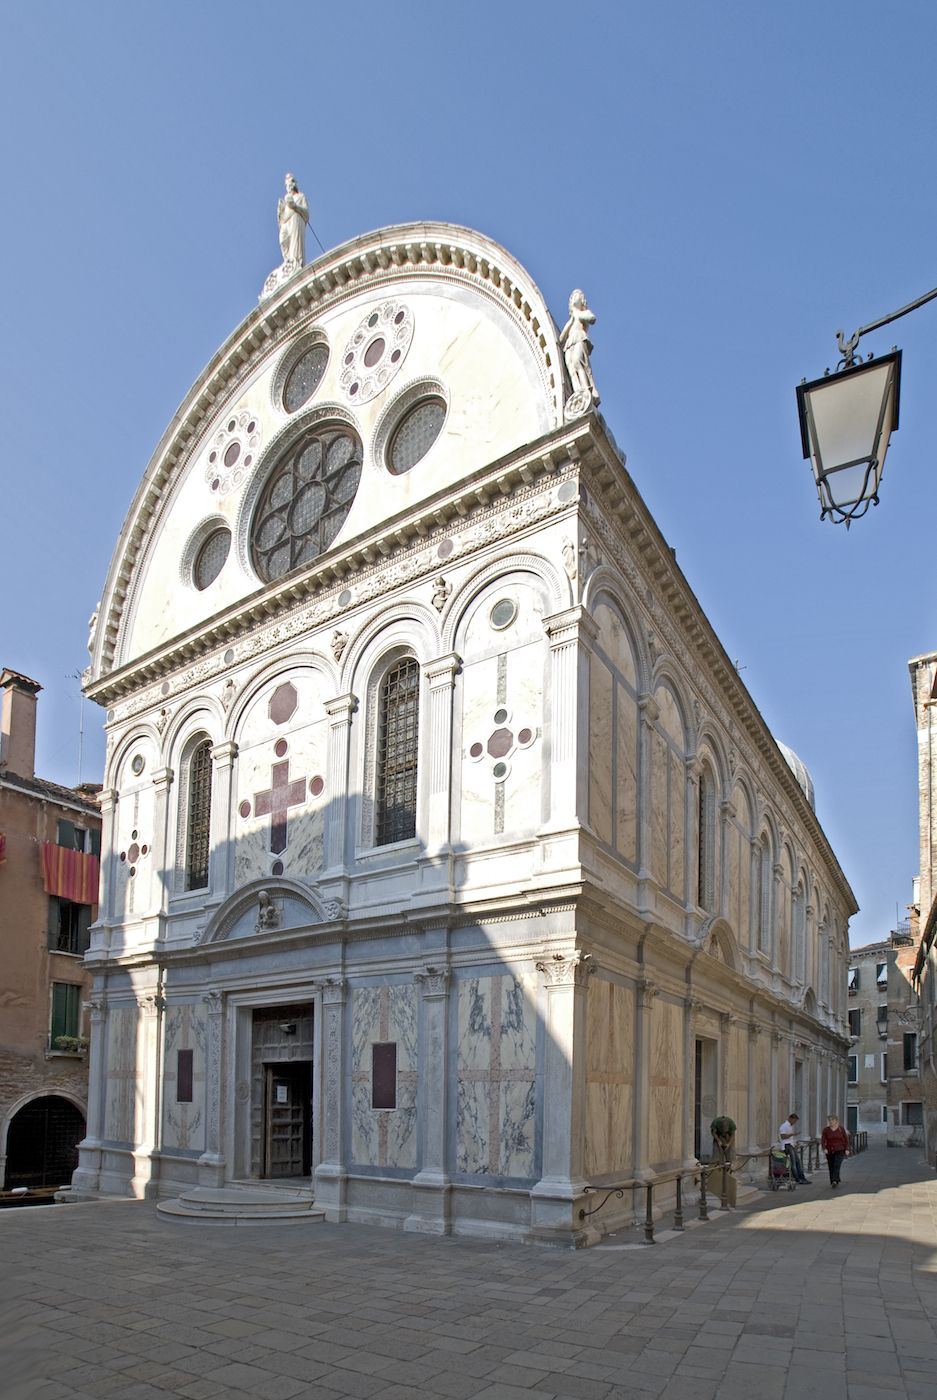 surroundings: the so called Chiesa dei Miracoli is a small treasure